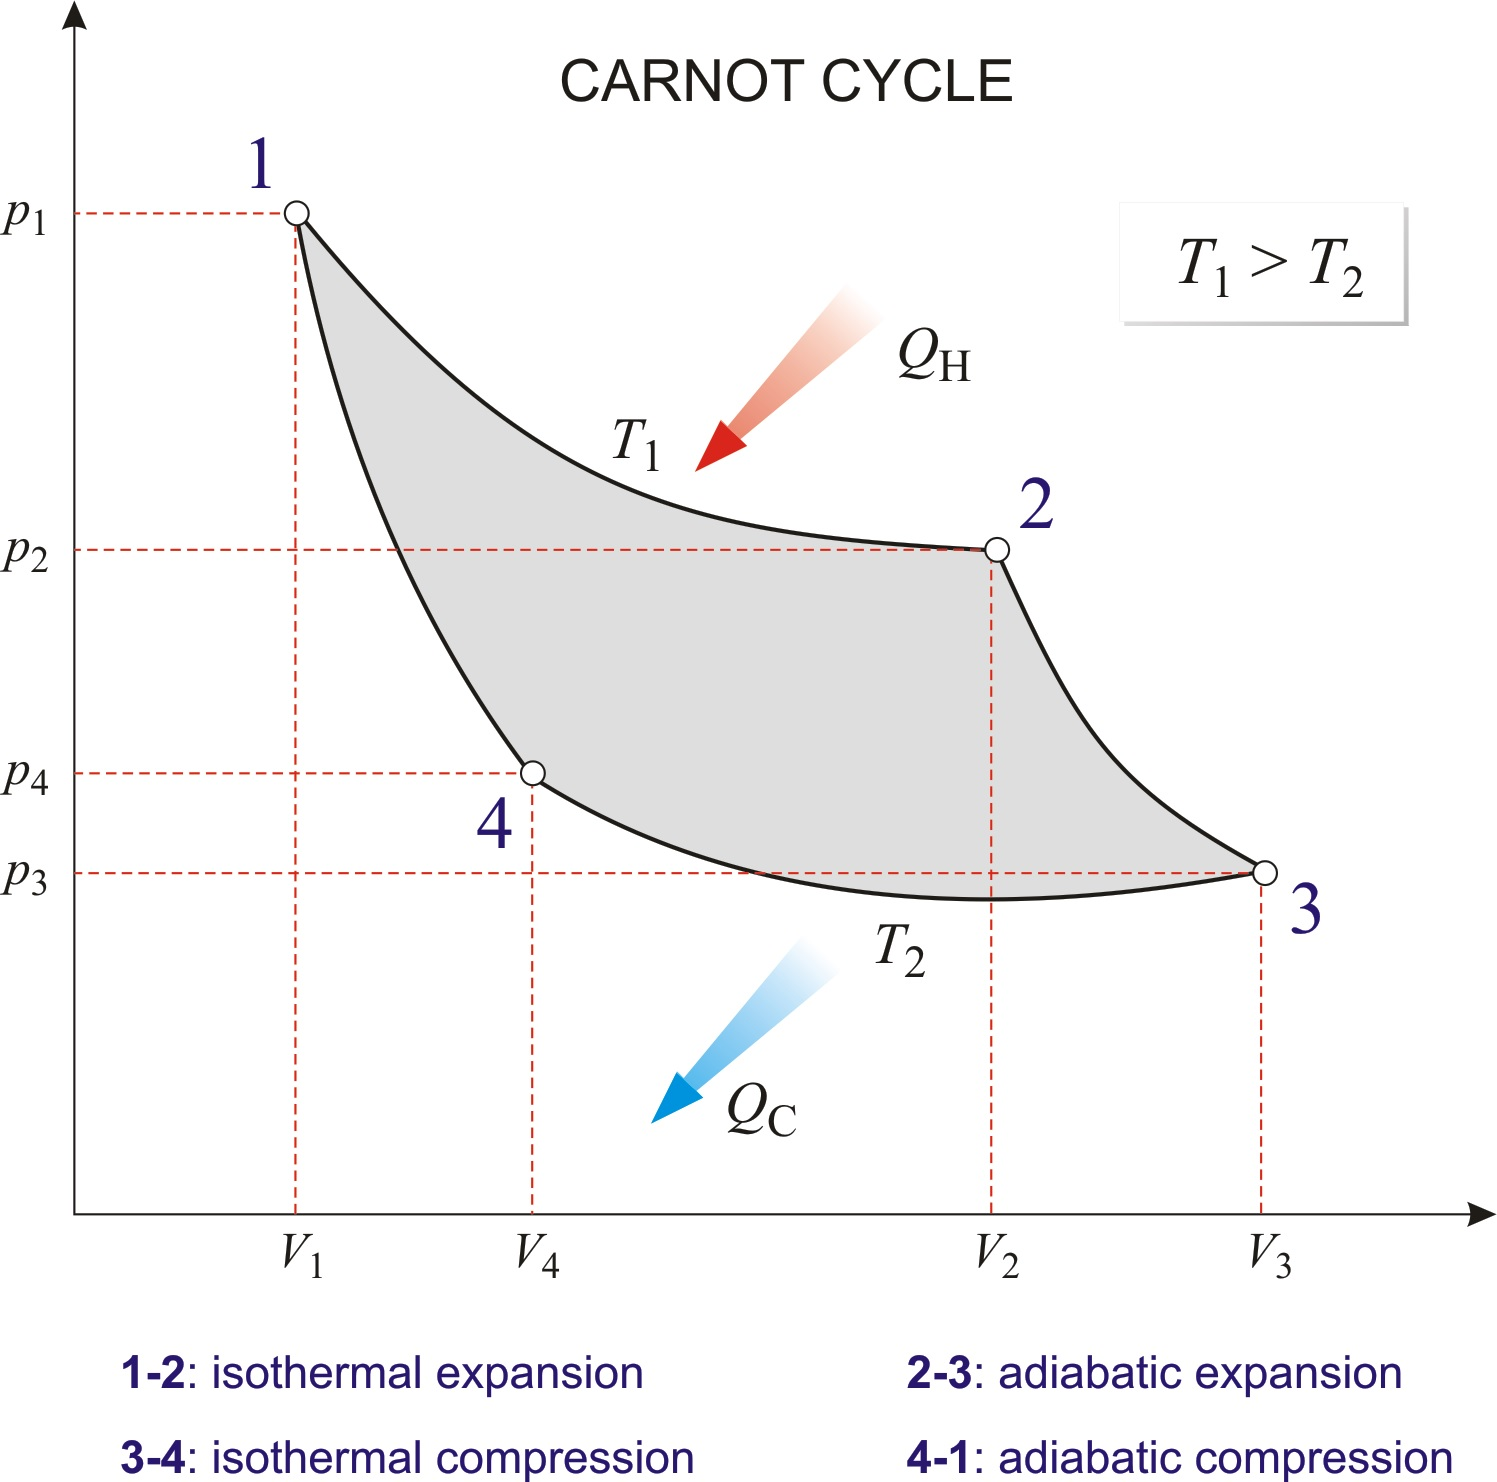 carnot cycle The rankine cycle is a model that is used to predict the performance of steam turbine systems the rankine cycle is an idealized thermodynamic cycle of a heat engine that converts heat into mechanical work the heat is supplied externally to a closed loop, which usually uses water as the working.